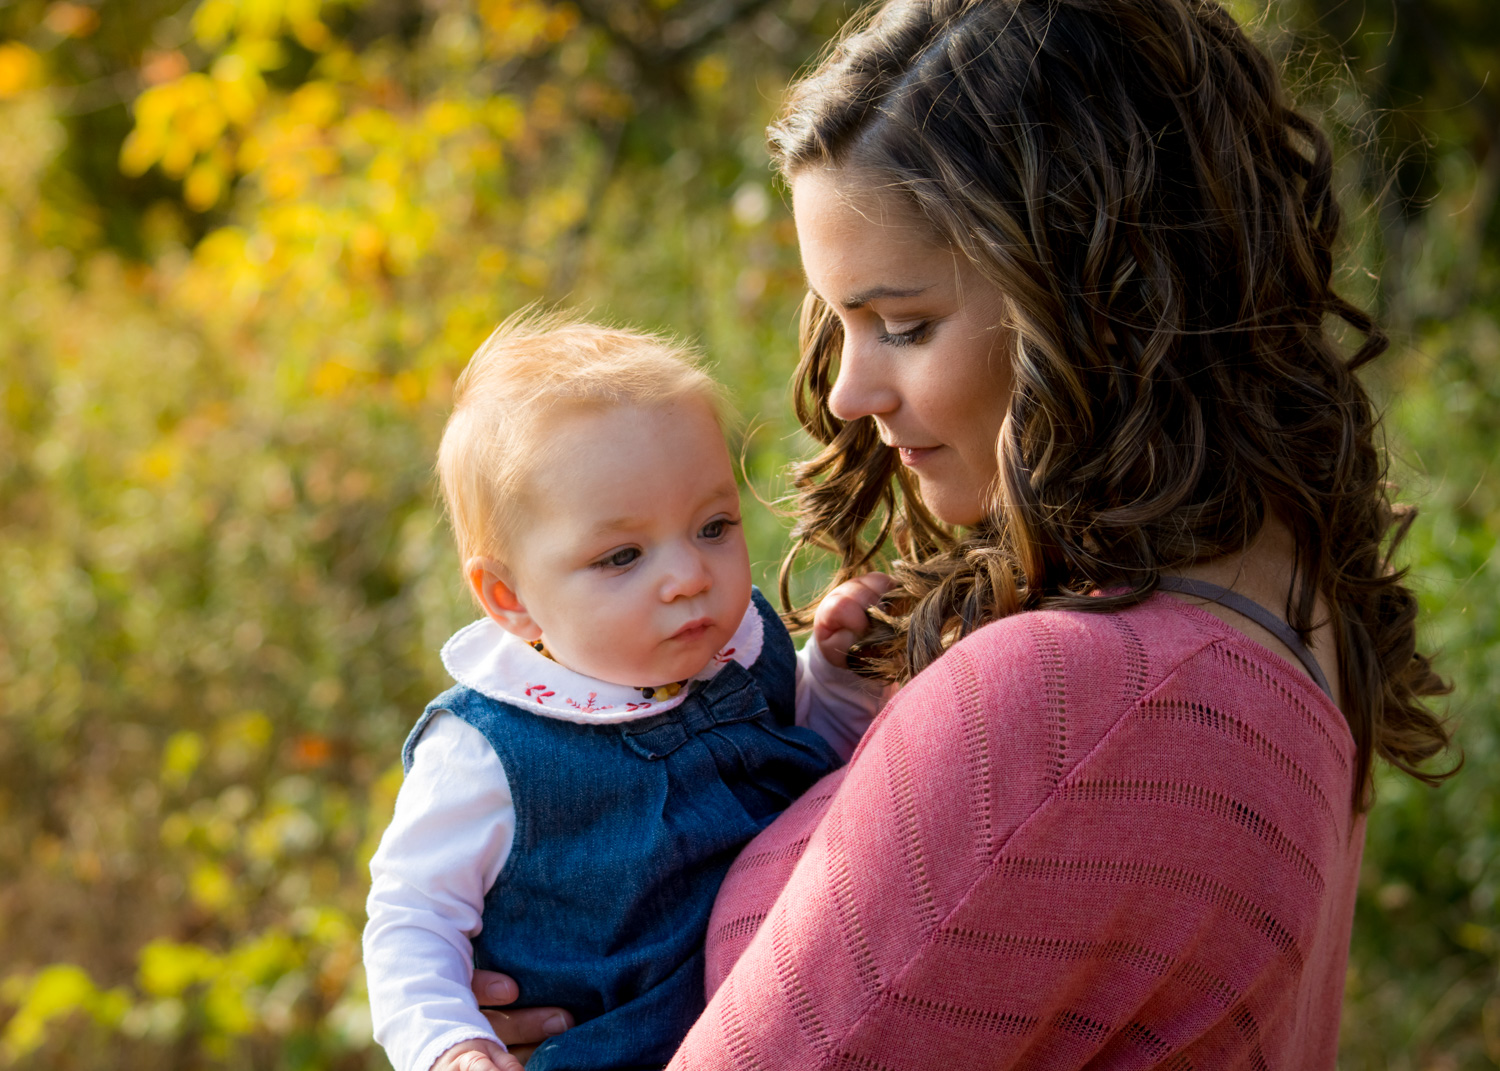 Family photo tips - candid